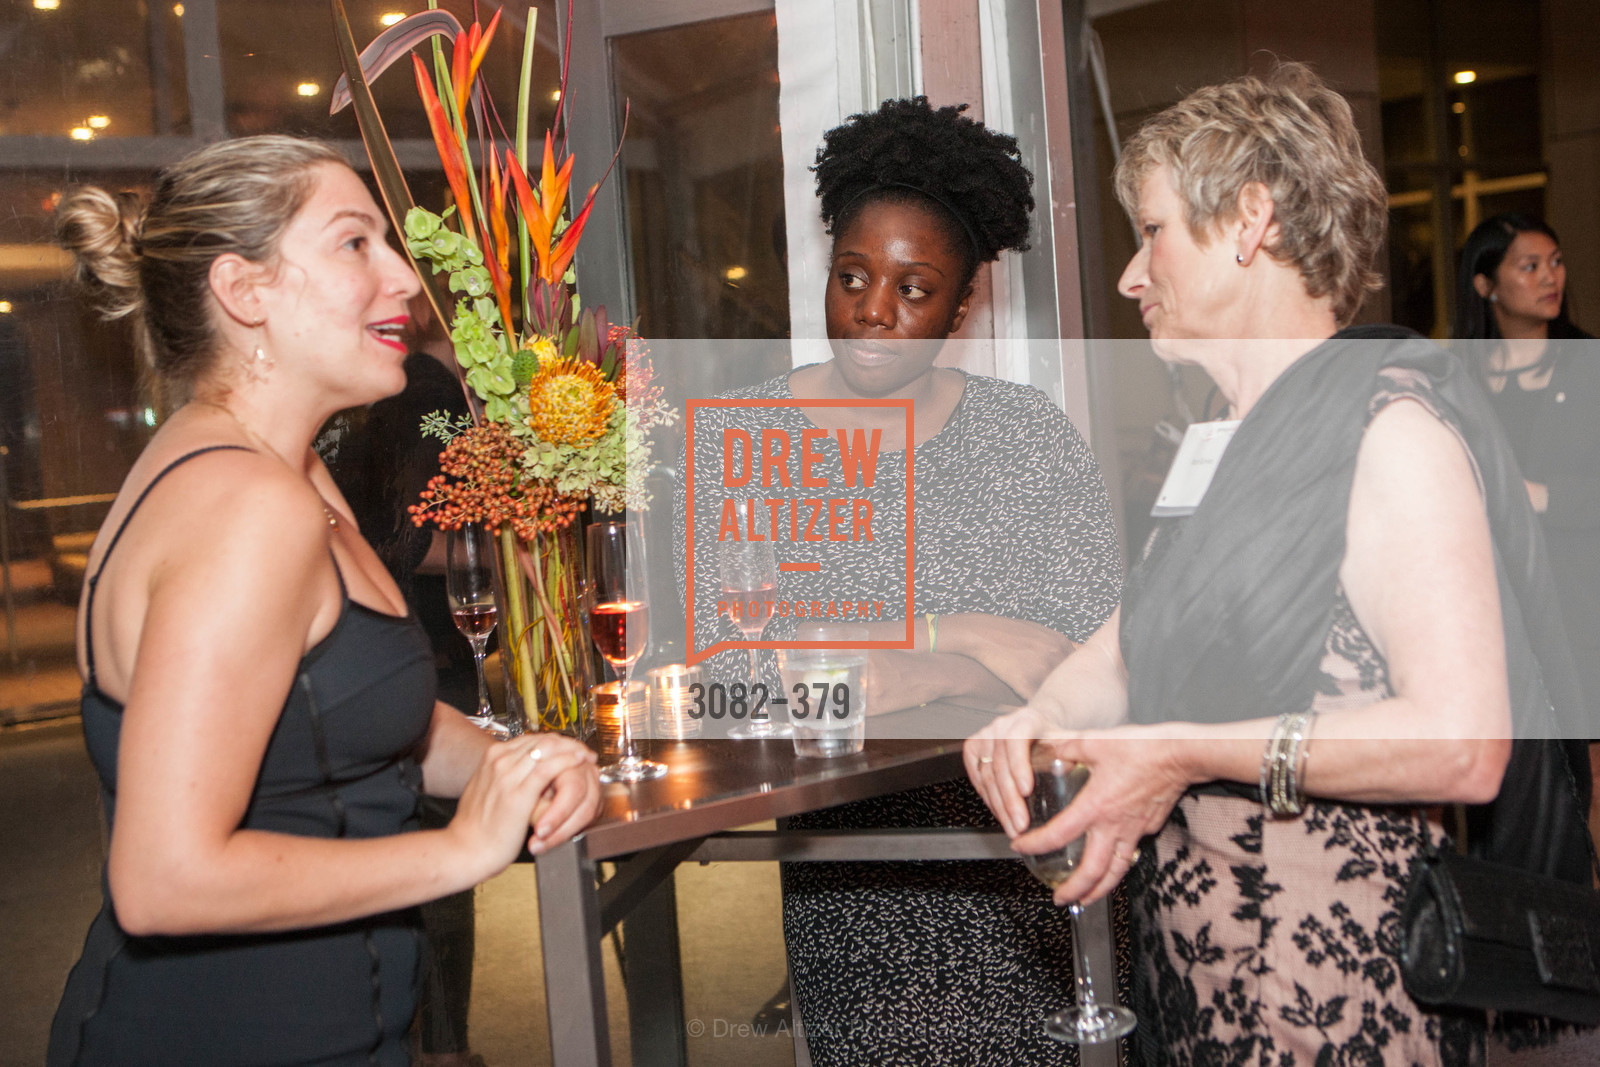 Extras, Genesys Works Bay Area Presents BREAKING THROUGH, October 14th, 2015, Photo,Drew Altizer, Drew Altizer Photography, full-service event agency, private events, San Francisco photographer, photographer California